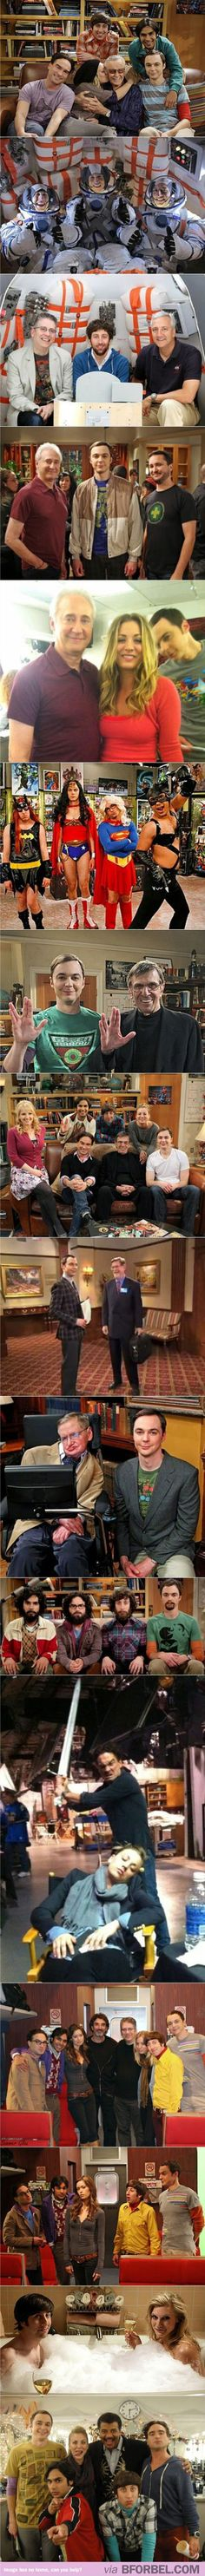 Big Bang Theory Behind-the-Scenes Pictures!